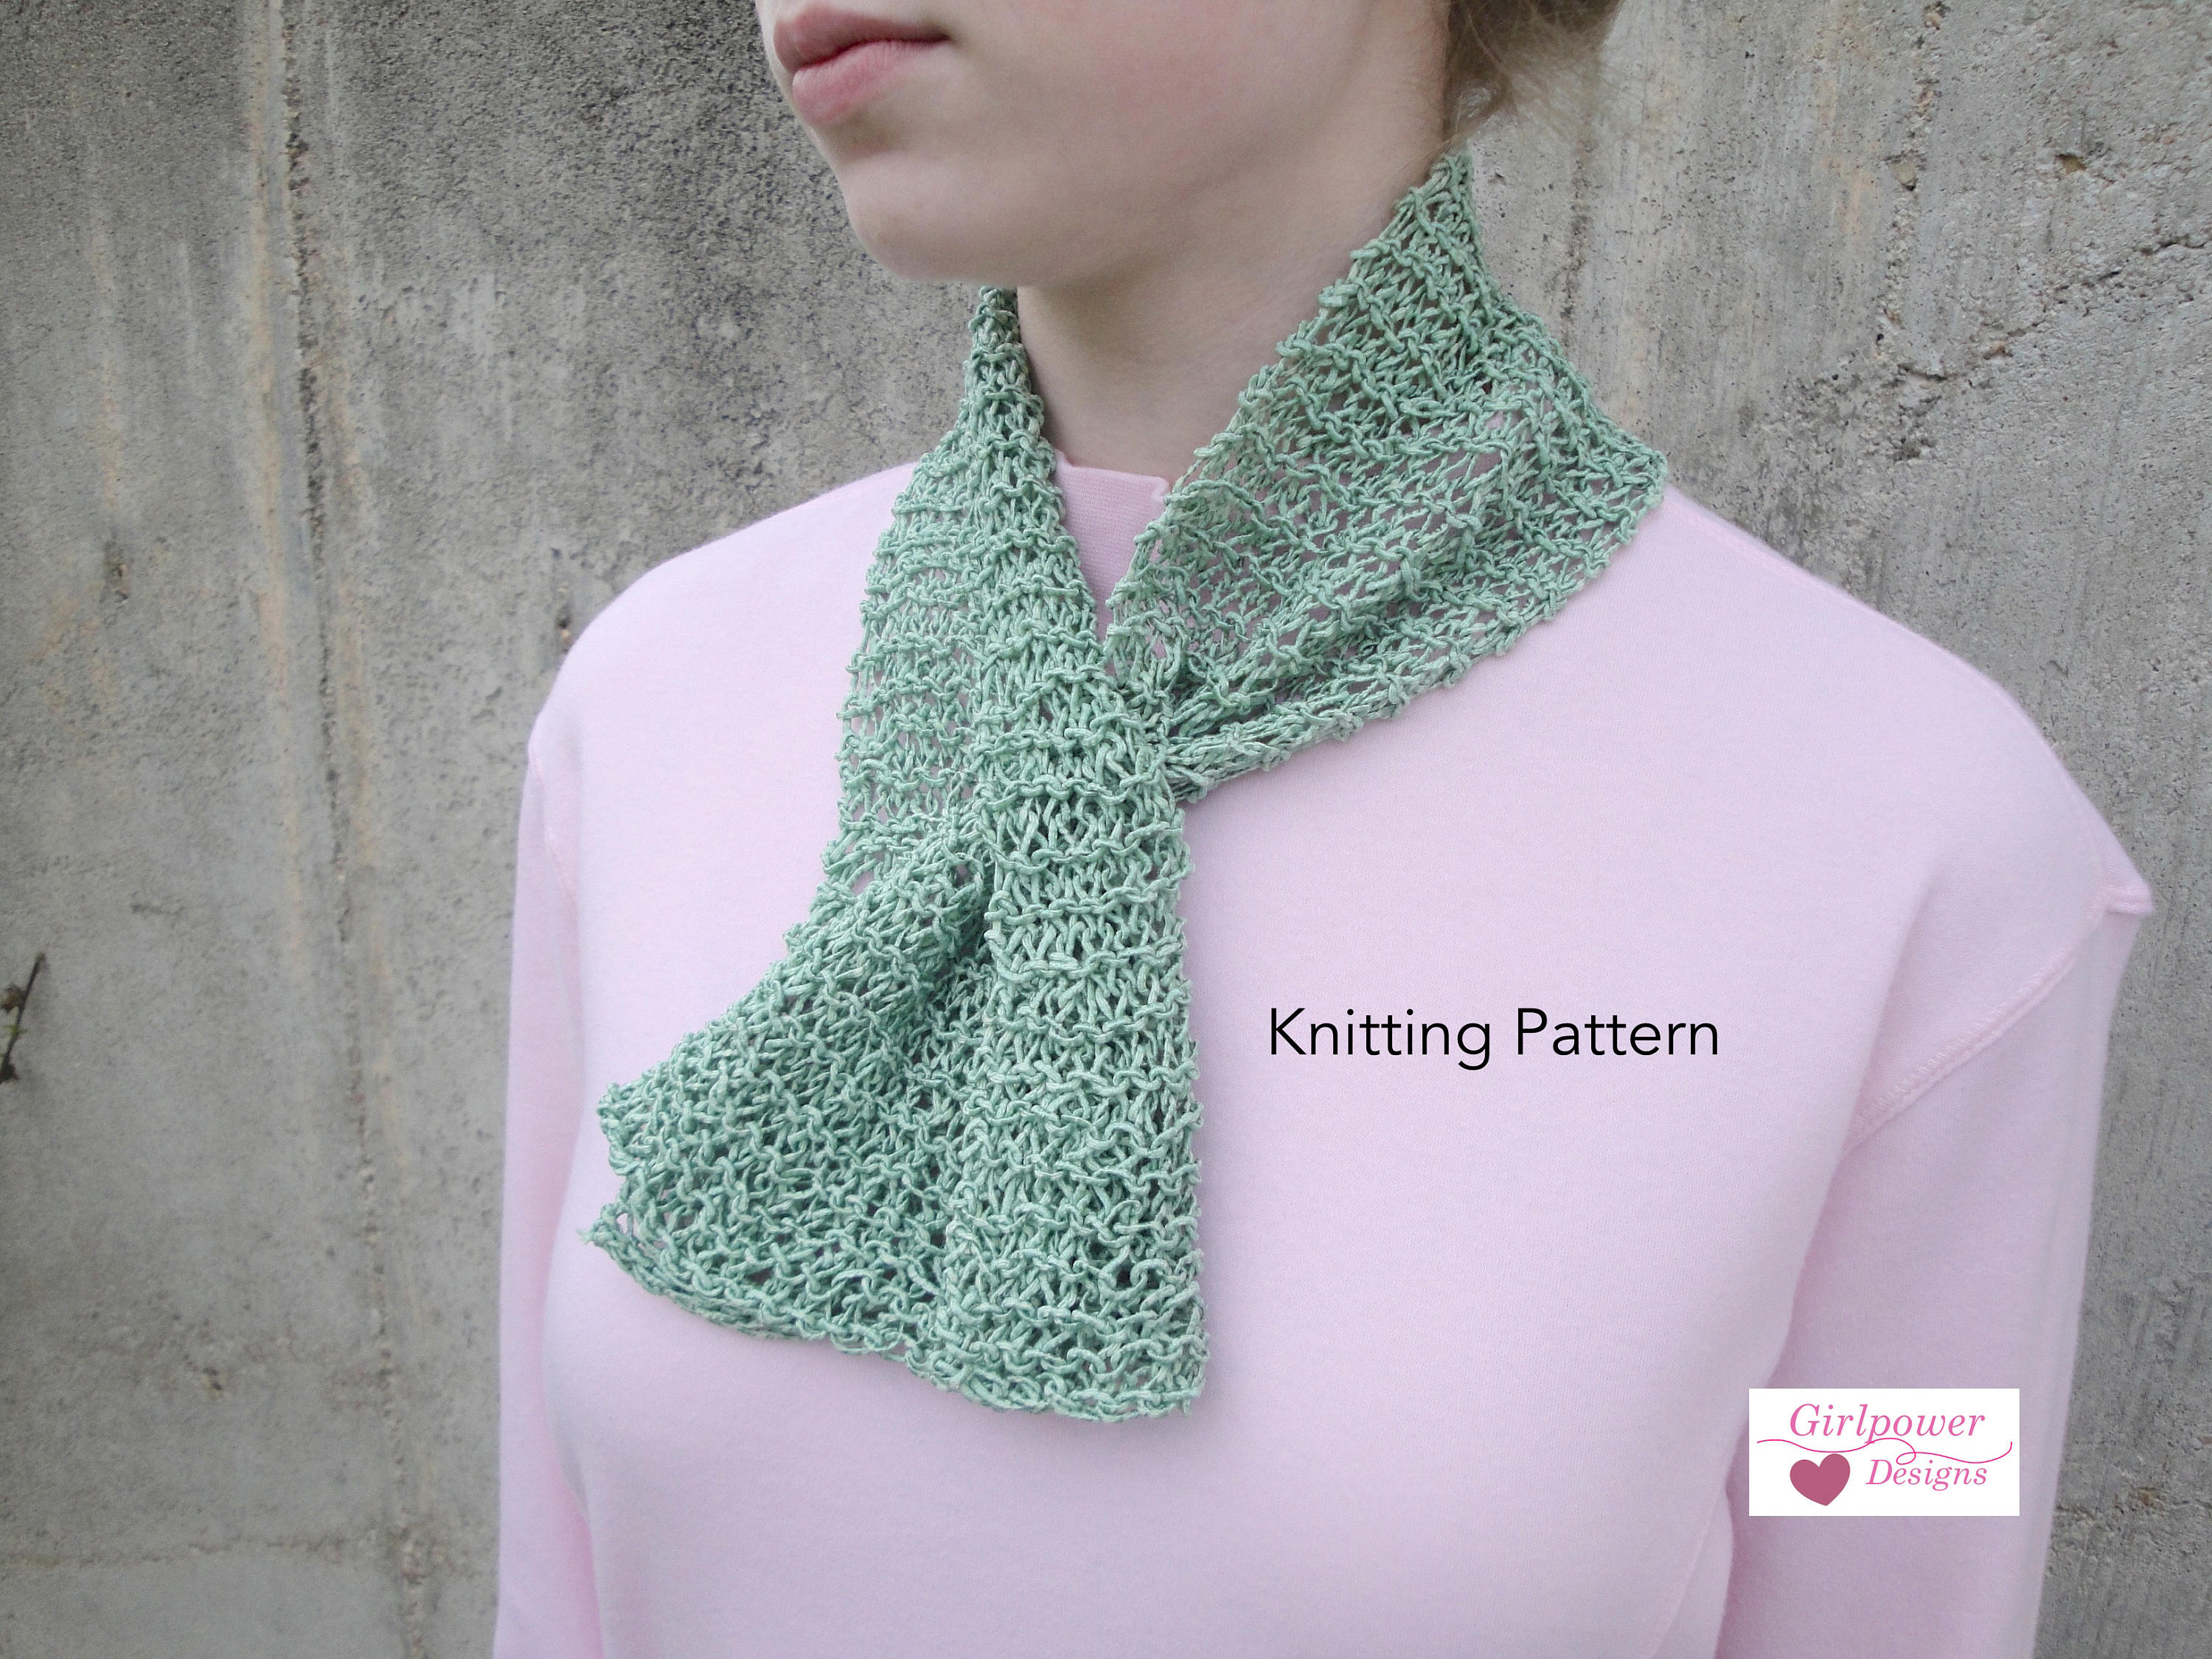 Ascot Scarf Knitting Pattern Keyhole Scarflette Pdf Knitting Pattern Easy Knit Short Scarf Flared Ends Ascot Scarf Neck Warmer Dk Worsted Yarn 1 Skein